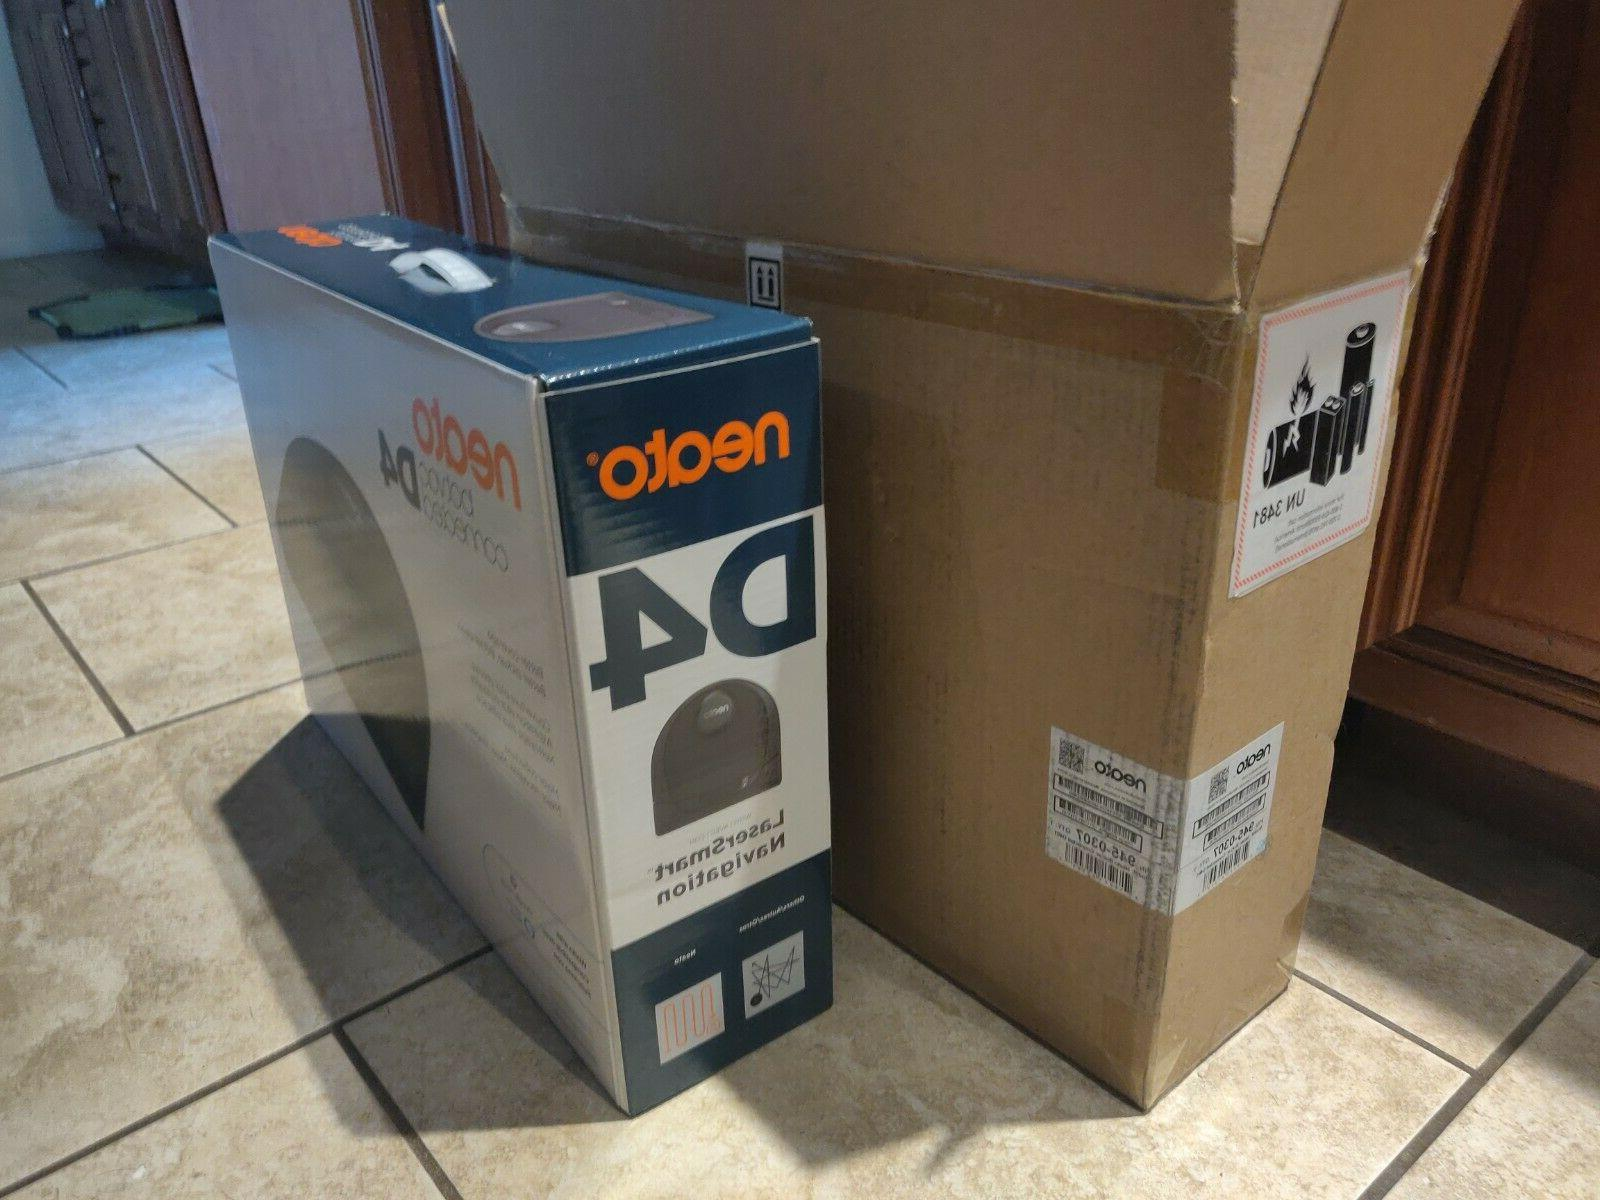 **BRAND - in box** Connected Robotic Cleaner